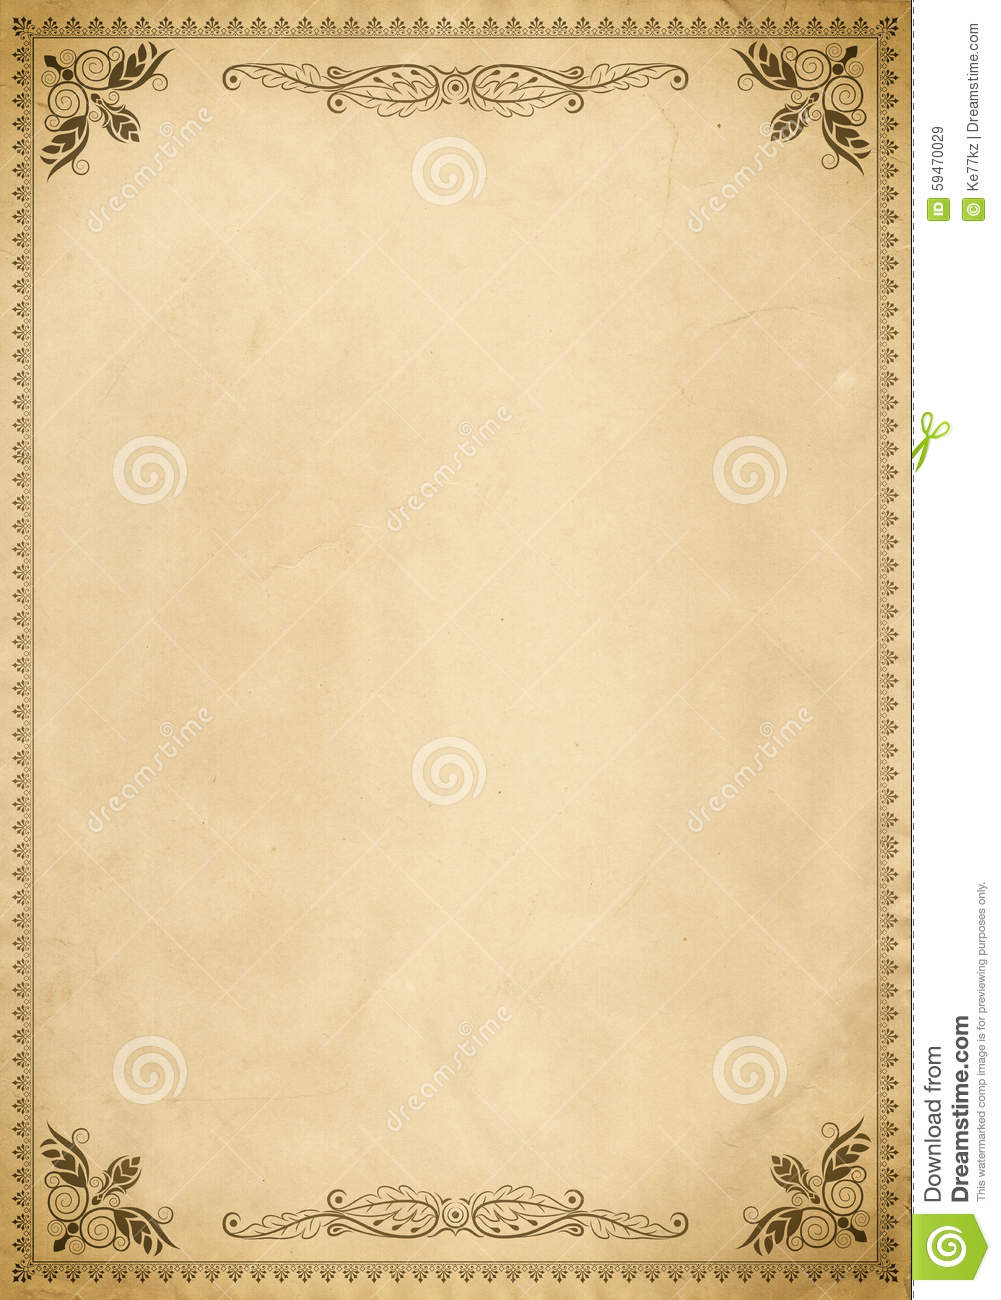 old paper background with vintage border. stock illustration